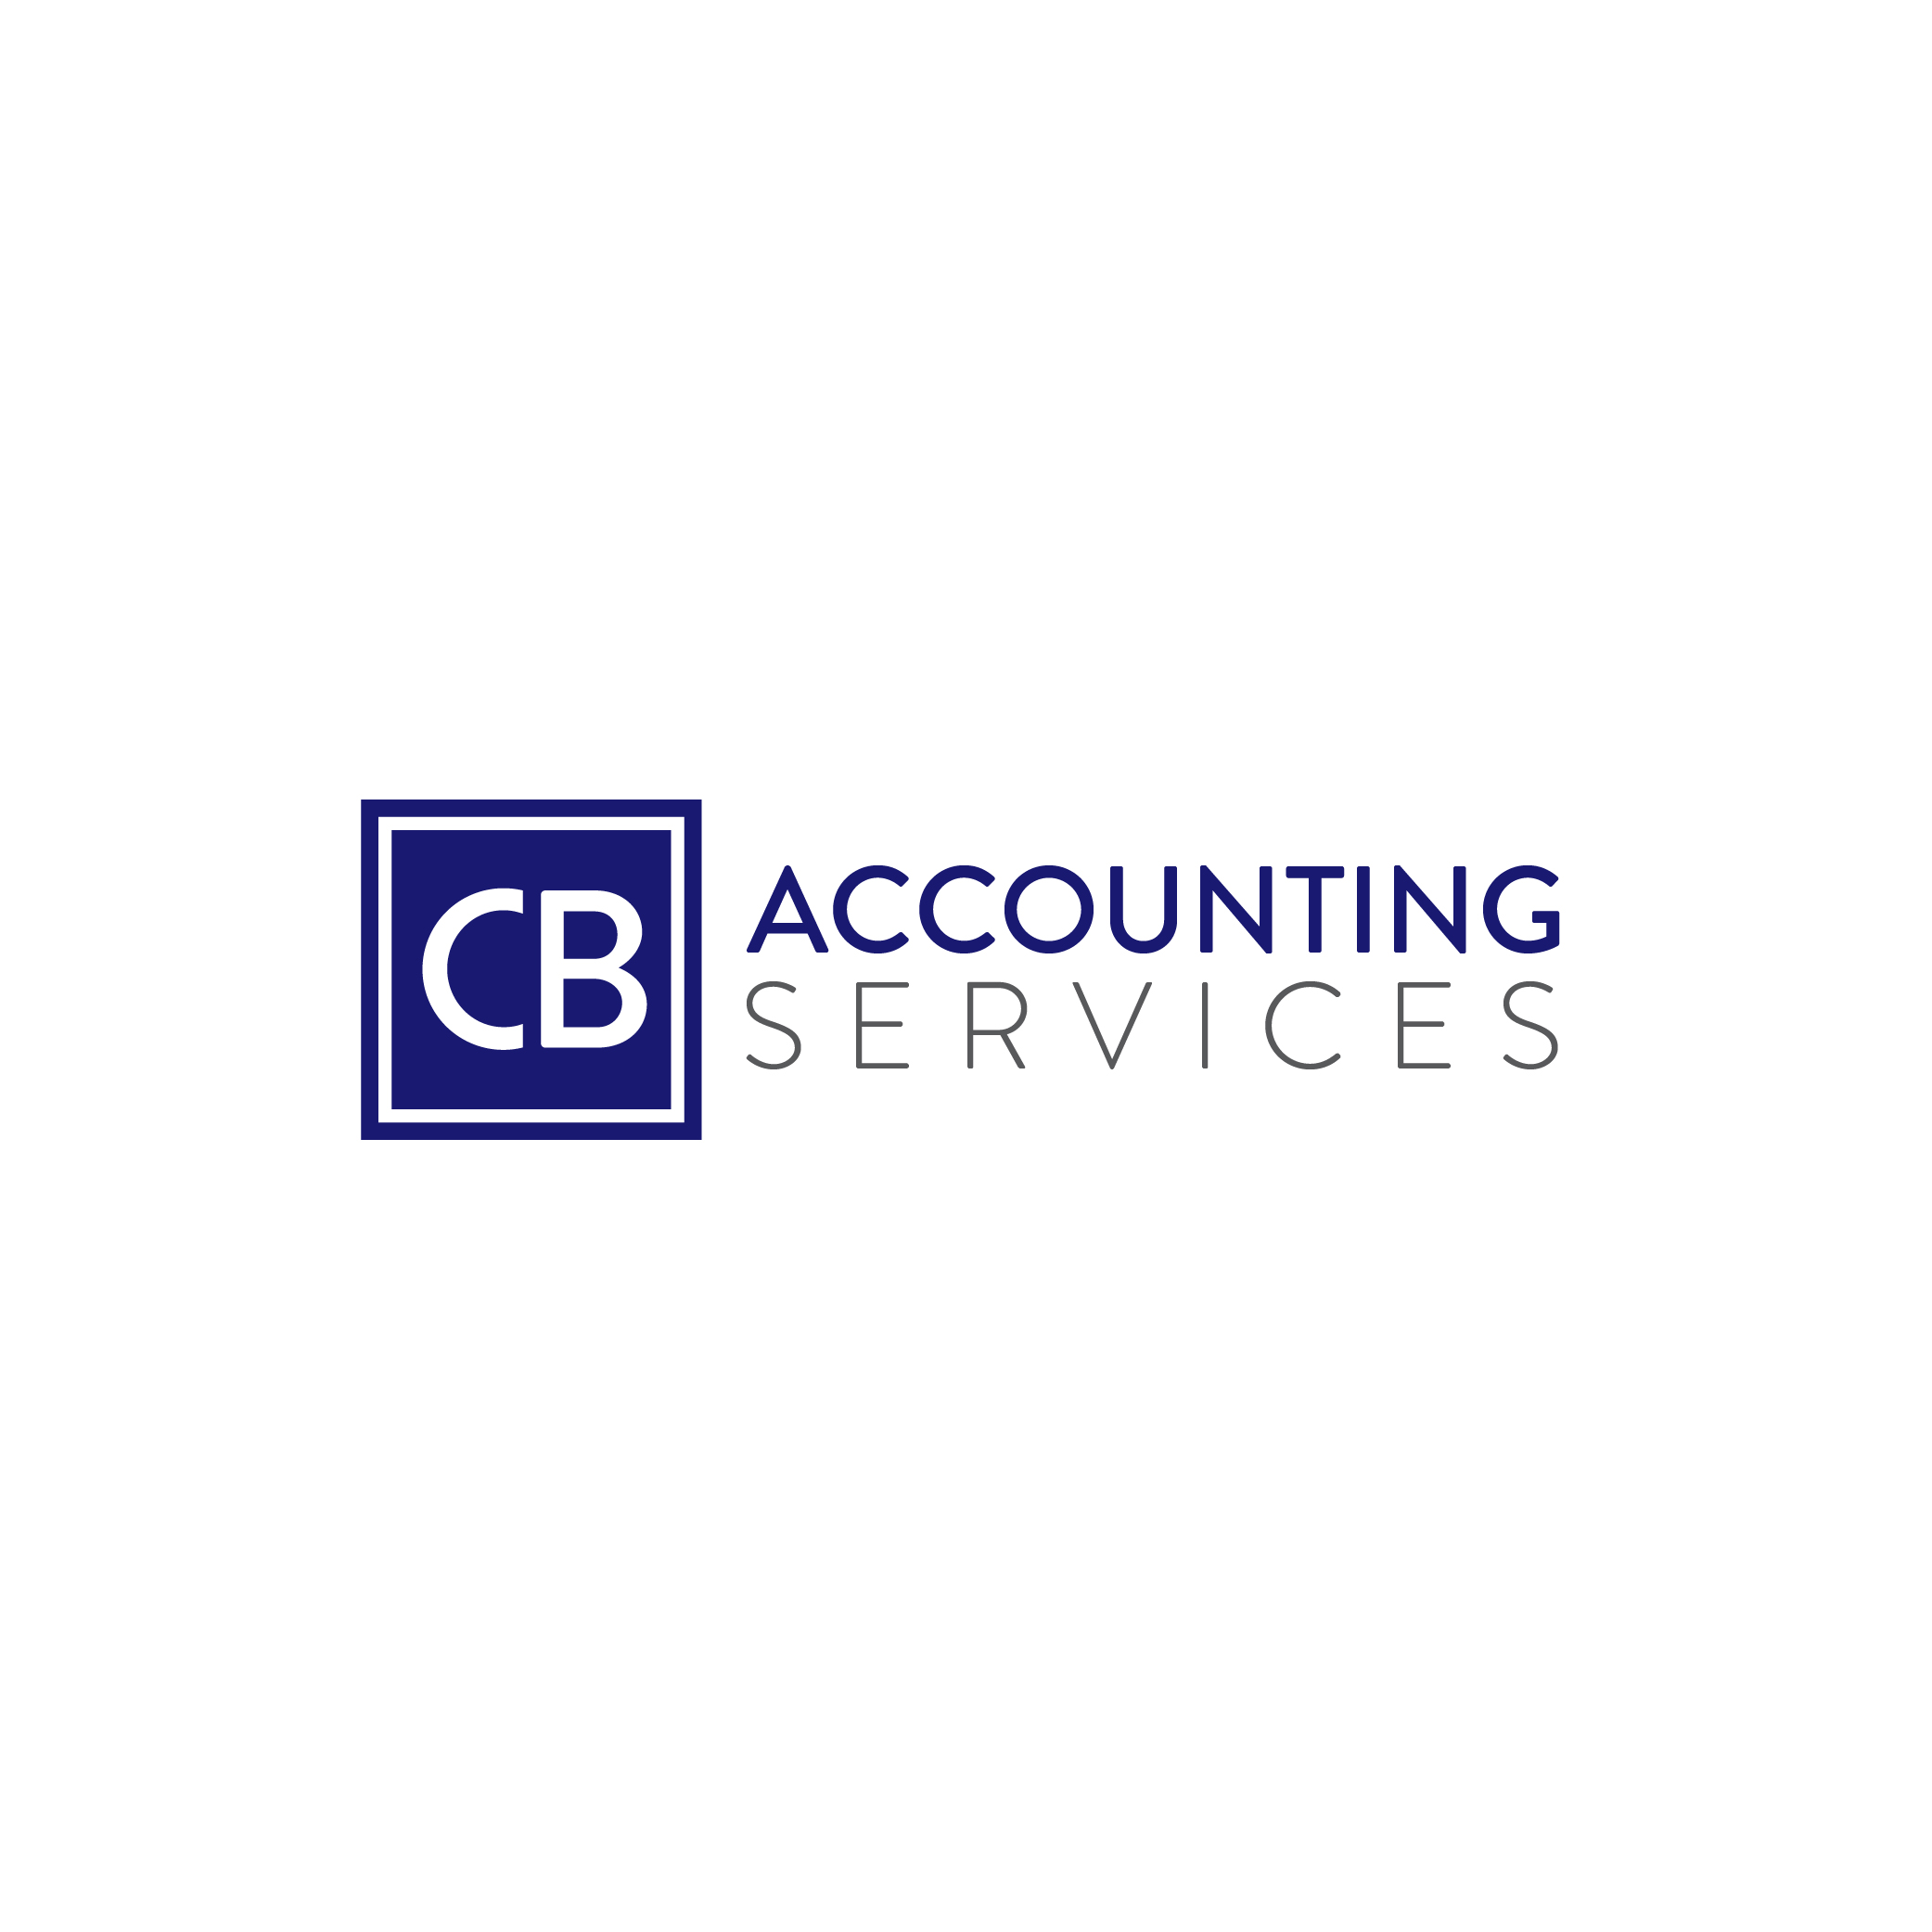 CB Accounting and Training Services